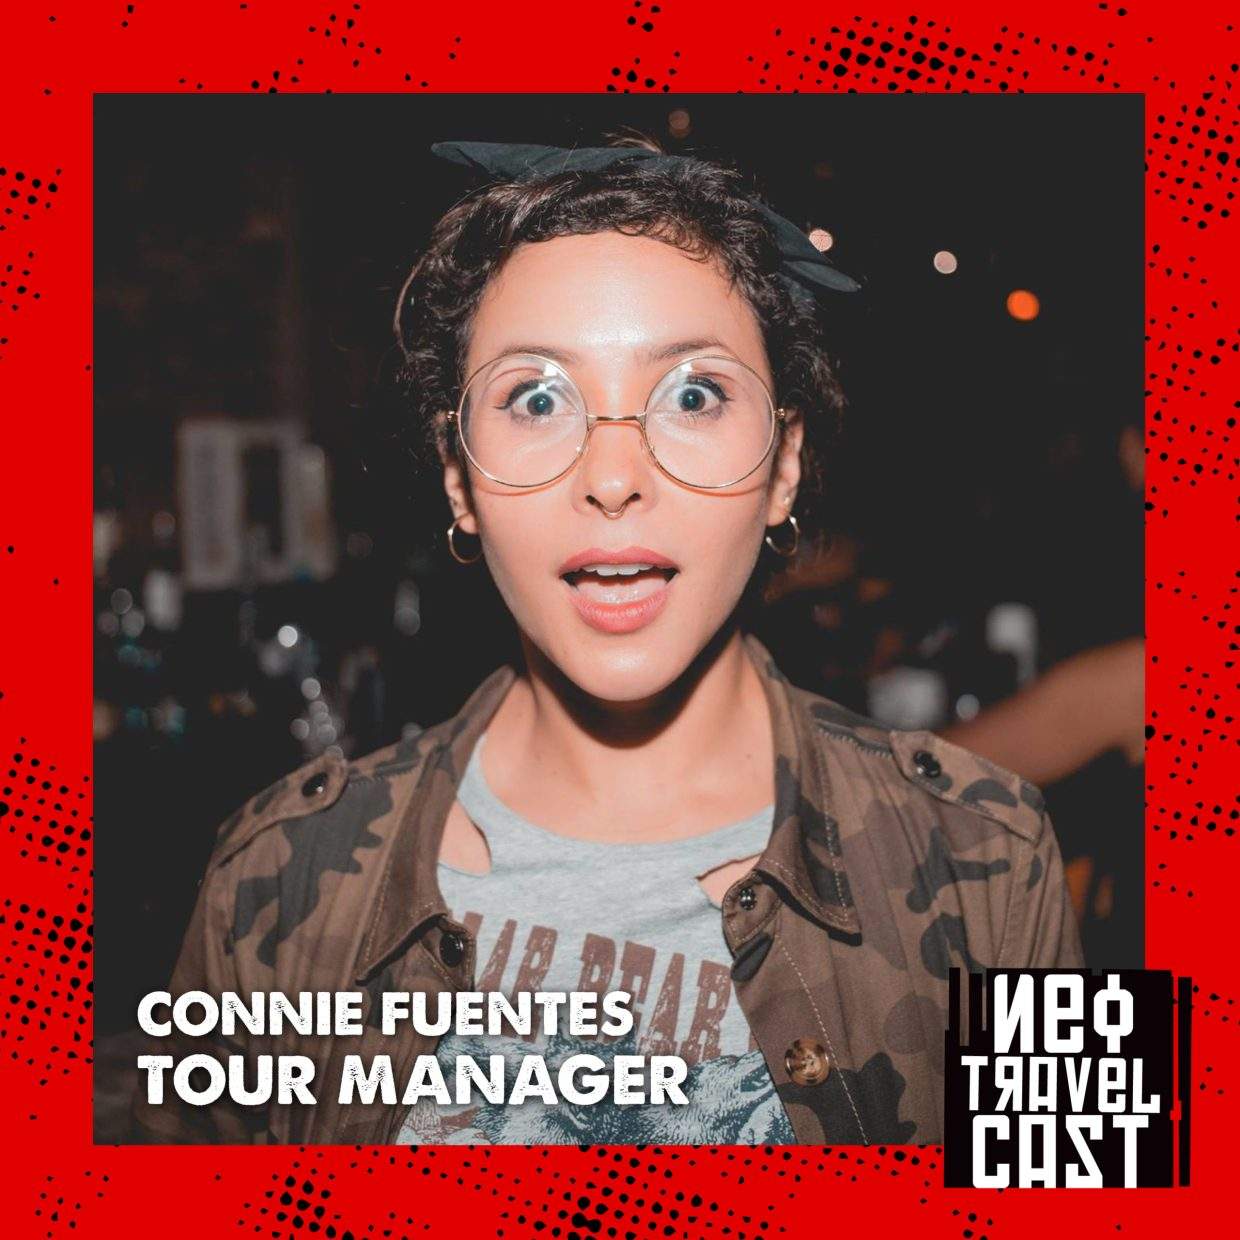 Neo Travel Cast - Connie Fuentes